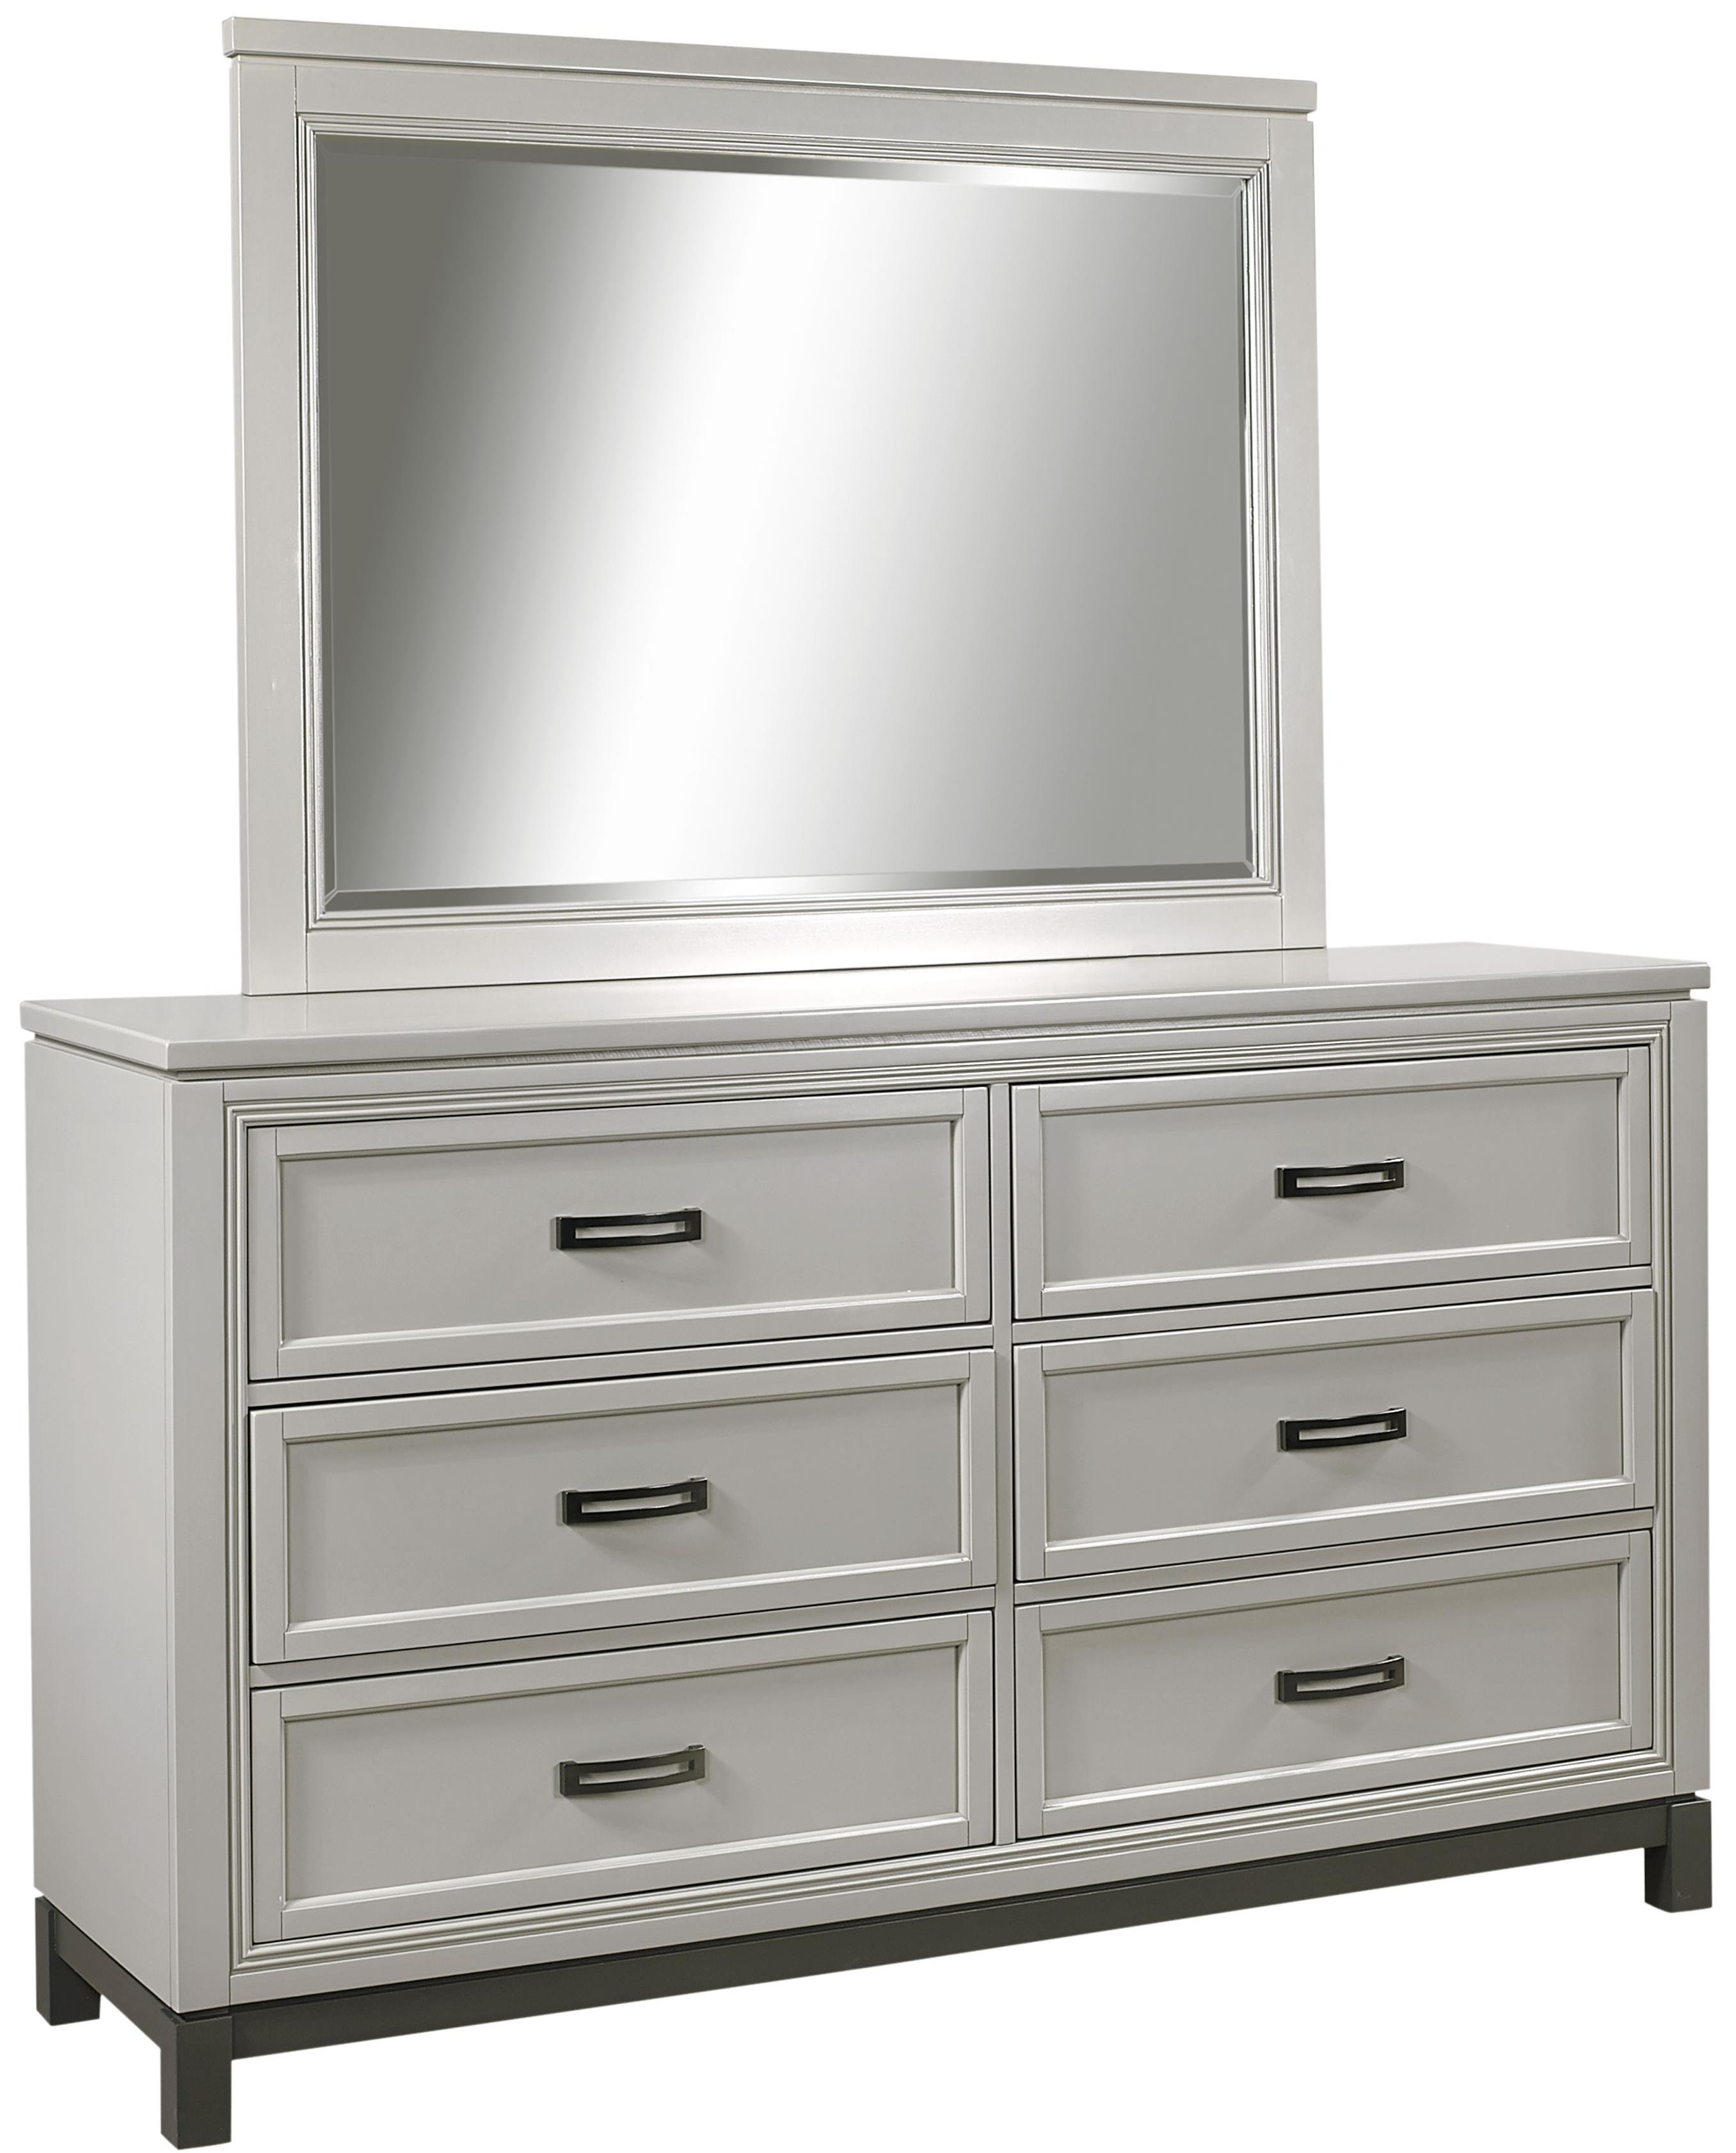 Hyde Park 6 Drawer Dresser and Mirror by Aspenhome at Baer's Furniture